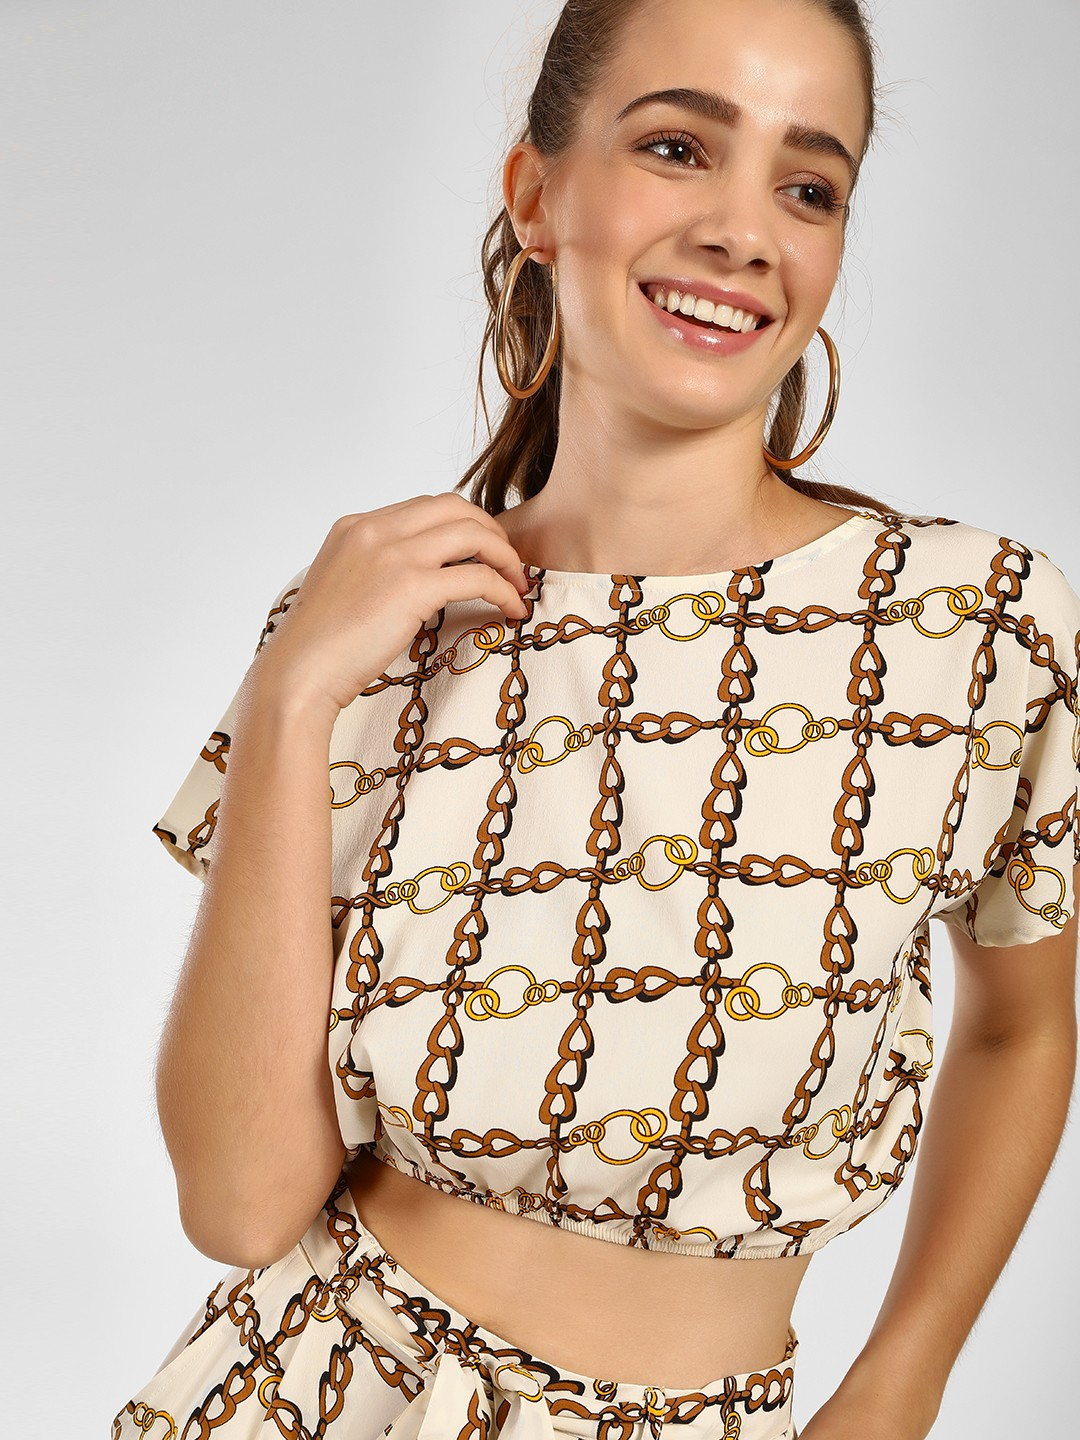 The Gud Look Print Chain Print Crop Top 1